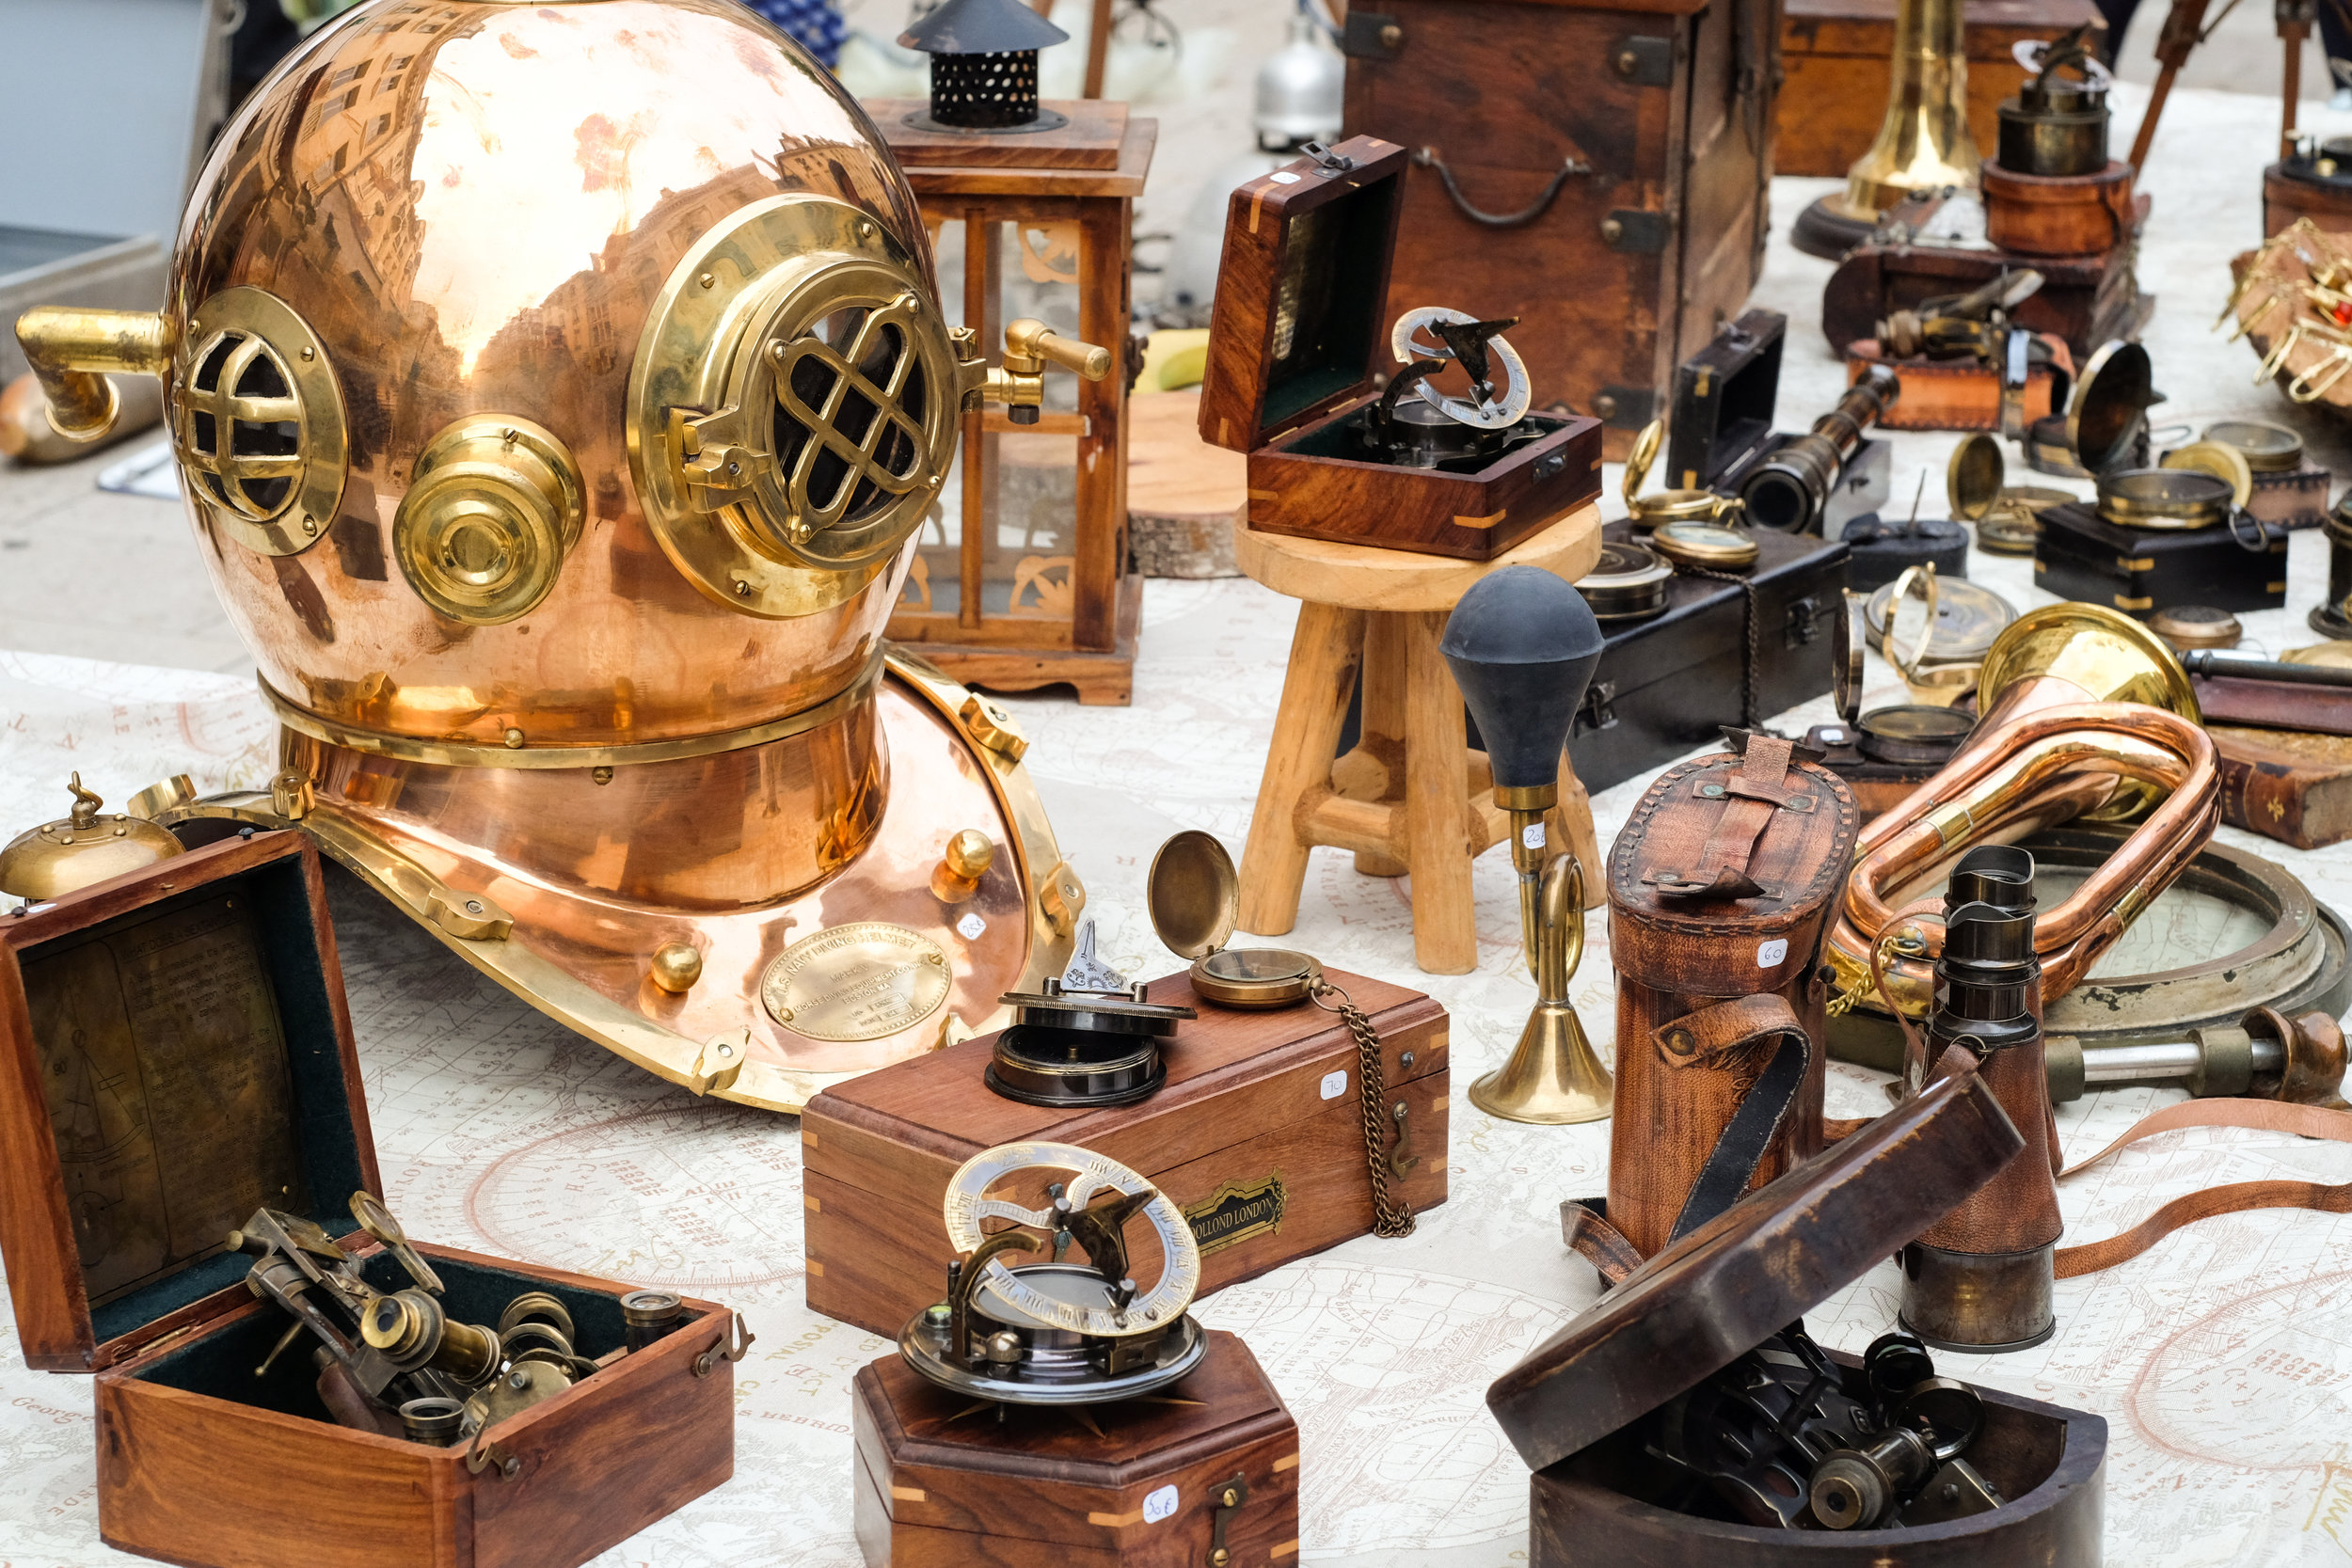 Just look at that copper diving helmet